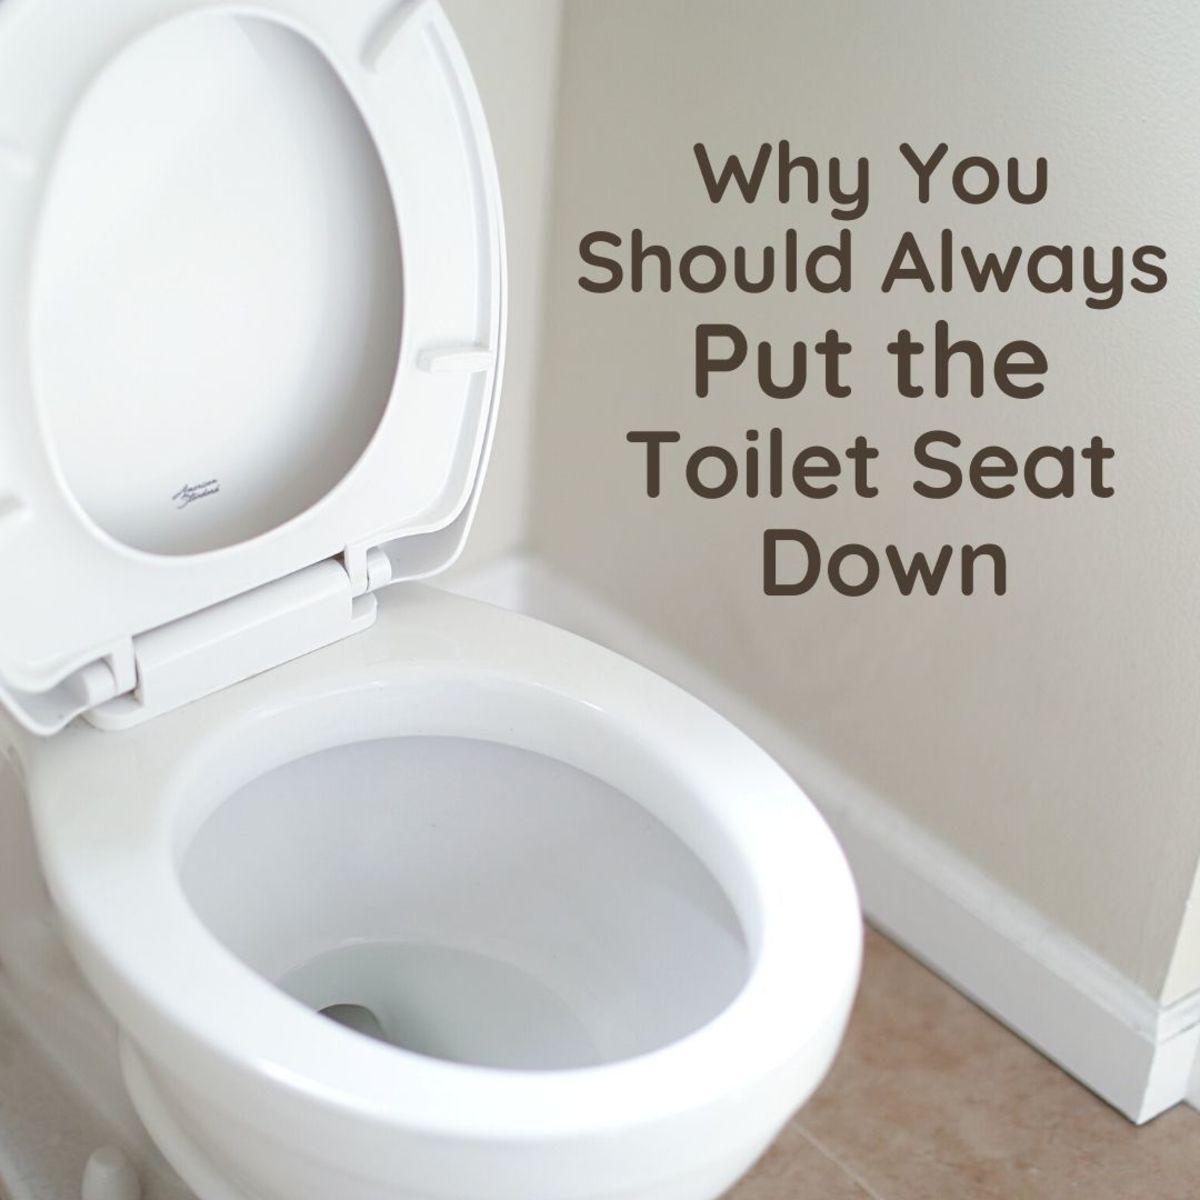 Toilets are gross and can even be dangerous—here's why you should shut the lid every time.